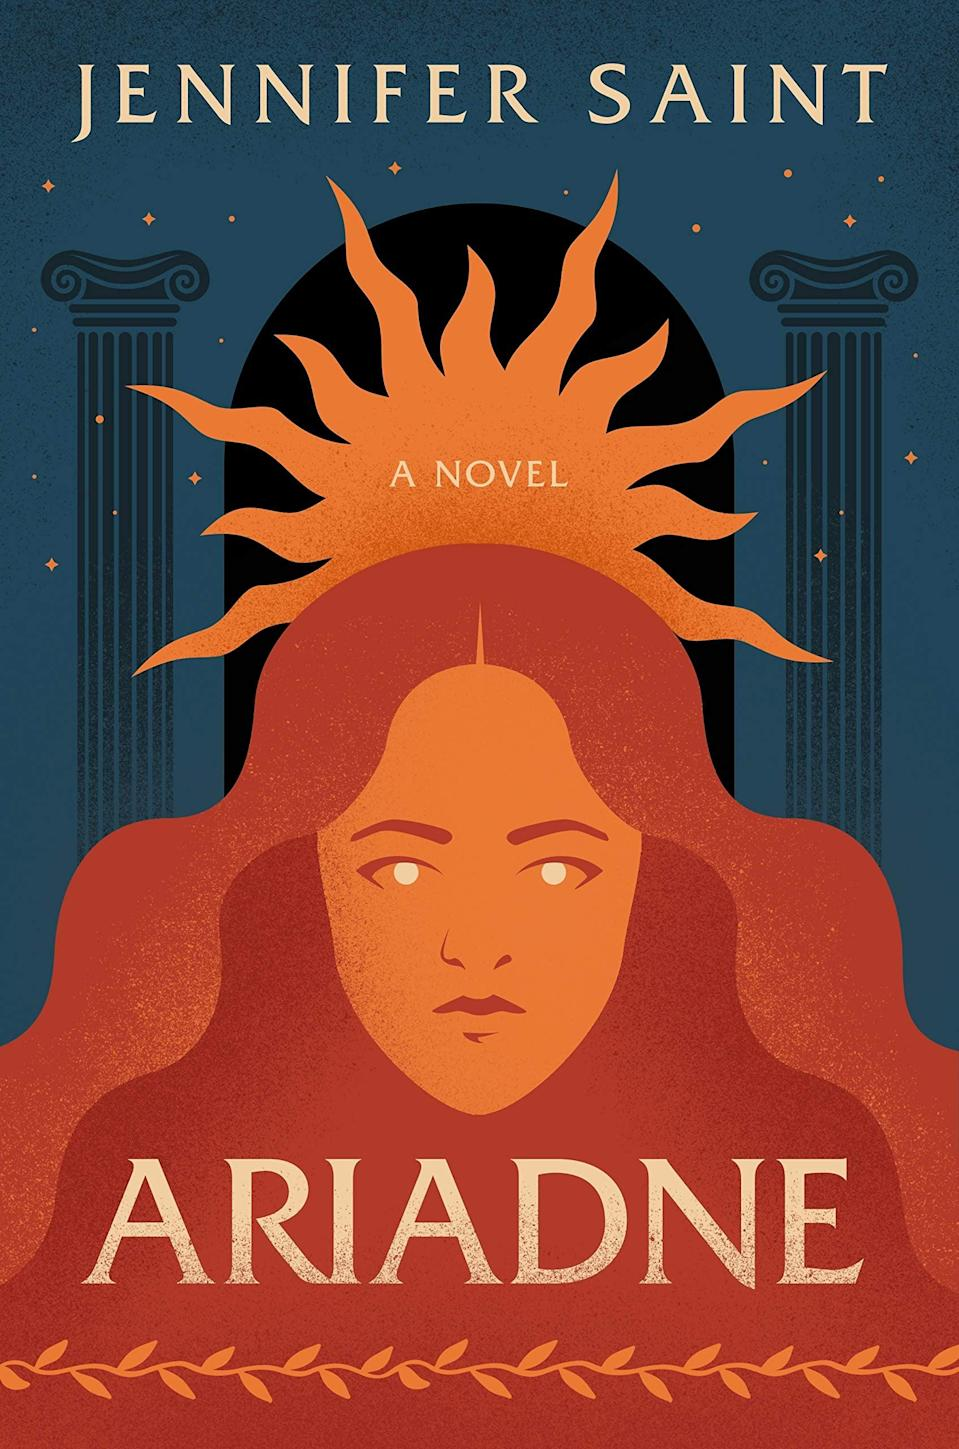 <p>If you loved Madeline Miller's <strong>Circe</strong>, then you have to check out <span><strong>Ariadne</strong></span> by Jennifer Saint. This buzzy debut is a Greek-mythology retelling that puts women at the center of the story. When Ariadne helps Theseus kill her brother, The Minotaur, her life is forever changed as she grapples with her decision to defy not only the gods but also her family. </p> <p><em>Out May 4</em></p>